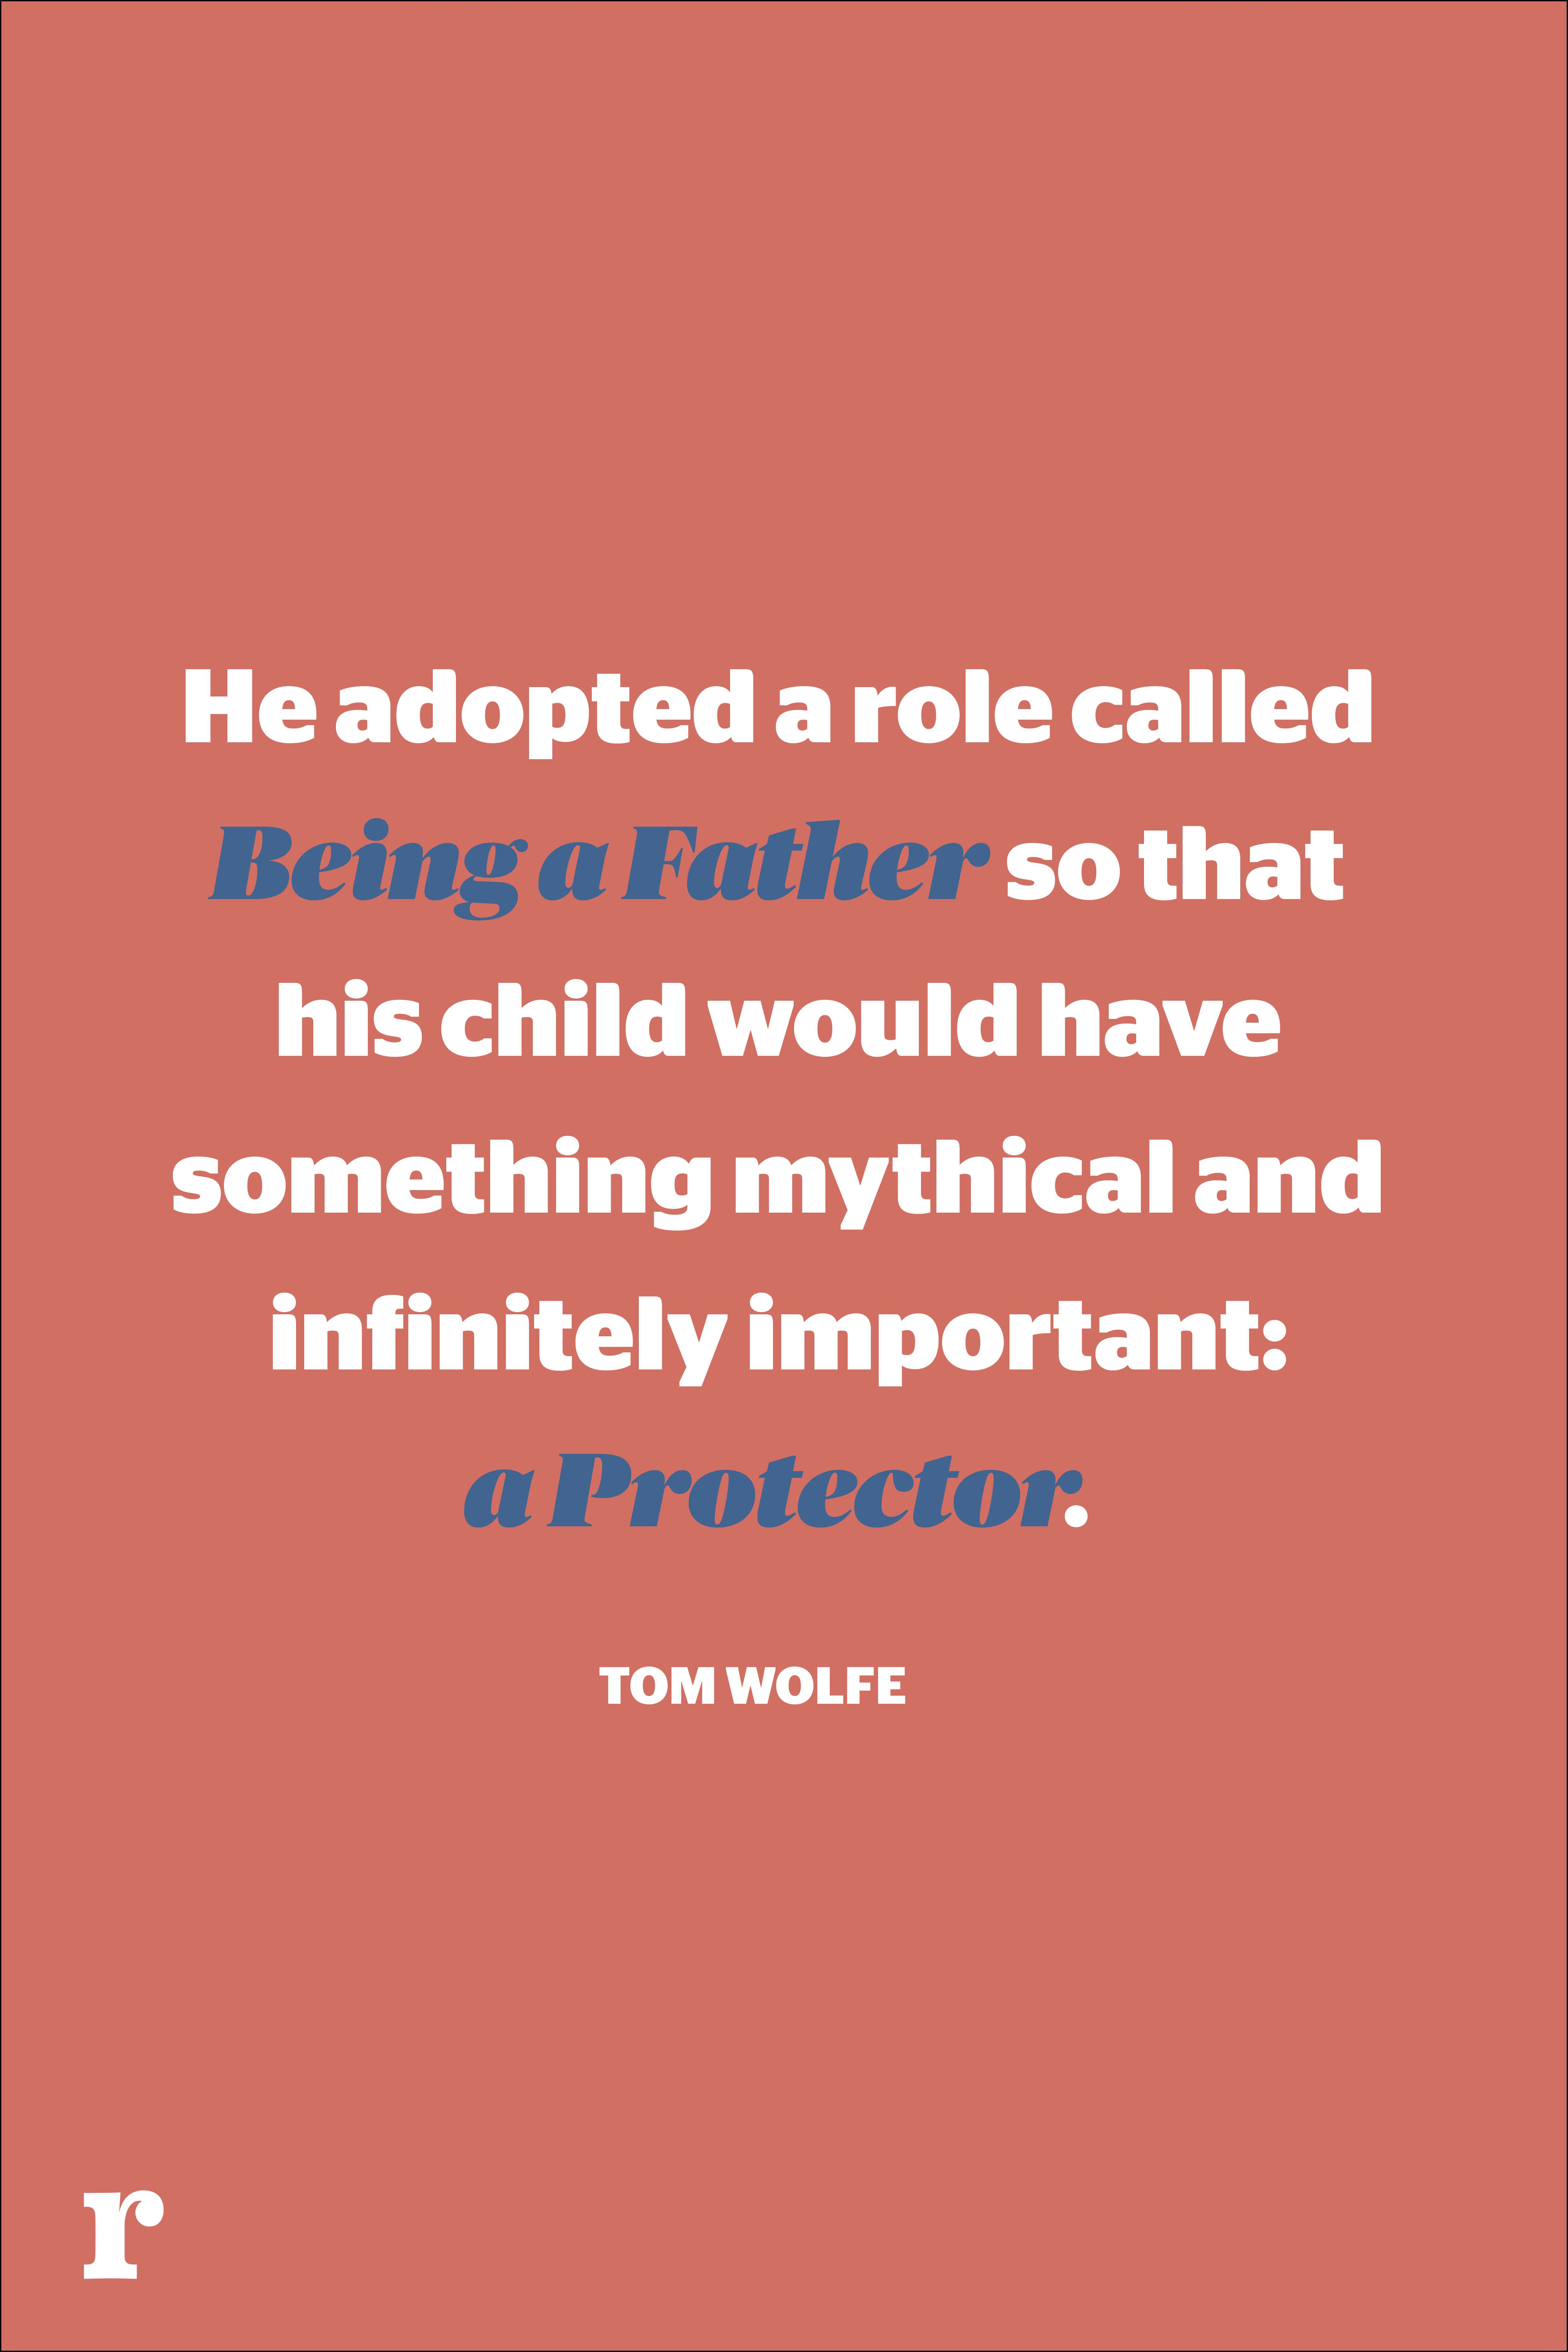 Sayings Tom Wolfe Fathers Day Quote Shutterfly 15 Best Fathers Day Quotes To Share With Dad Meaningful